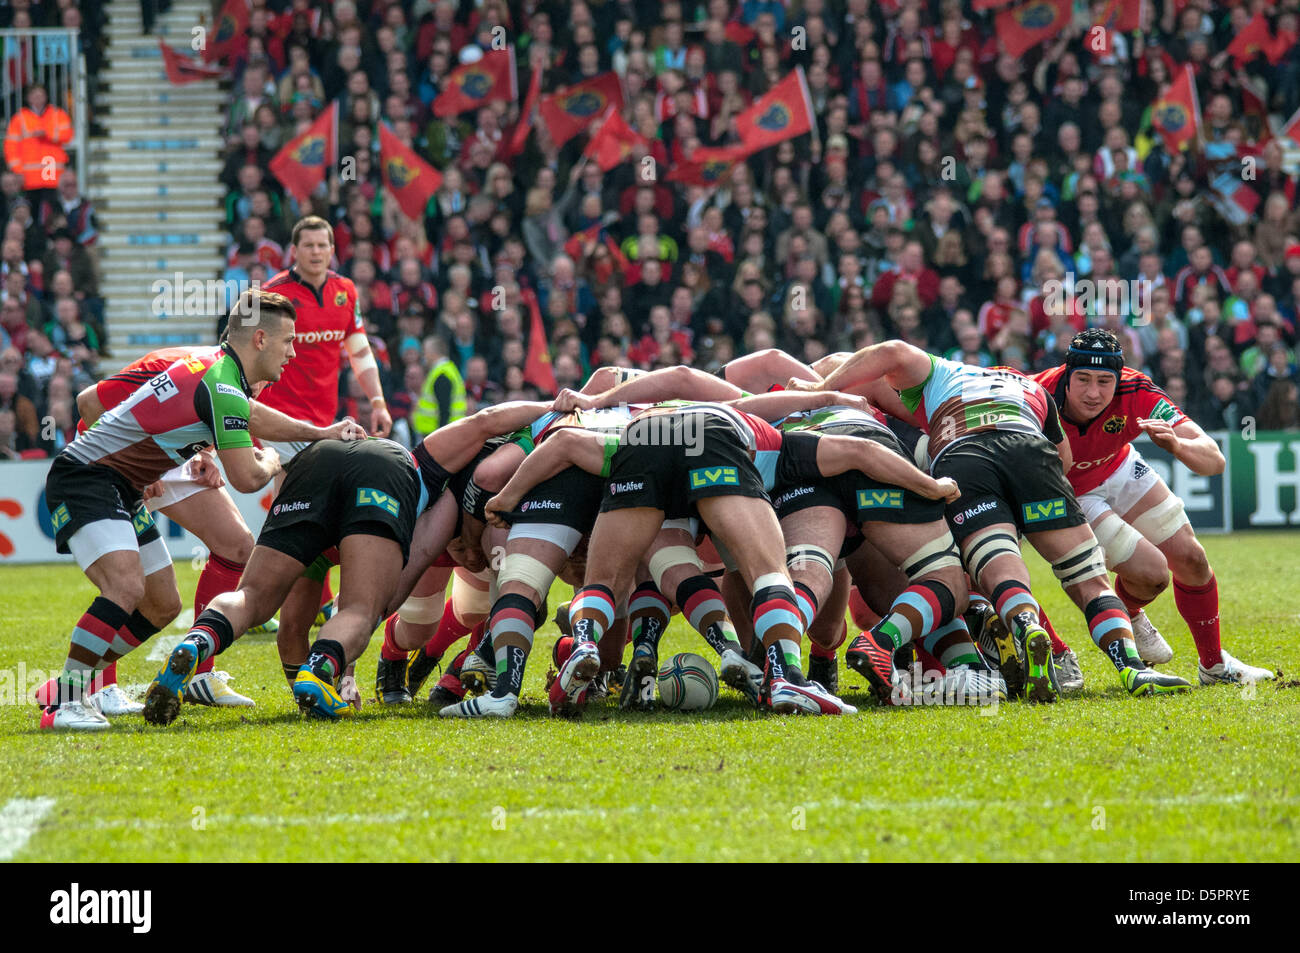 Scrum down during the Heineken Cup quarter-final match between Harlequins and Munster at the Twickenham Stoop, London, - Stock Image